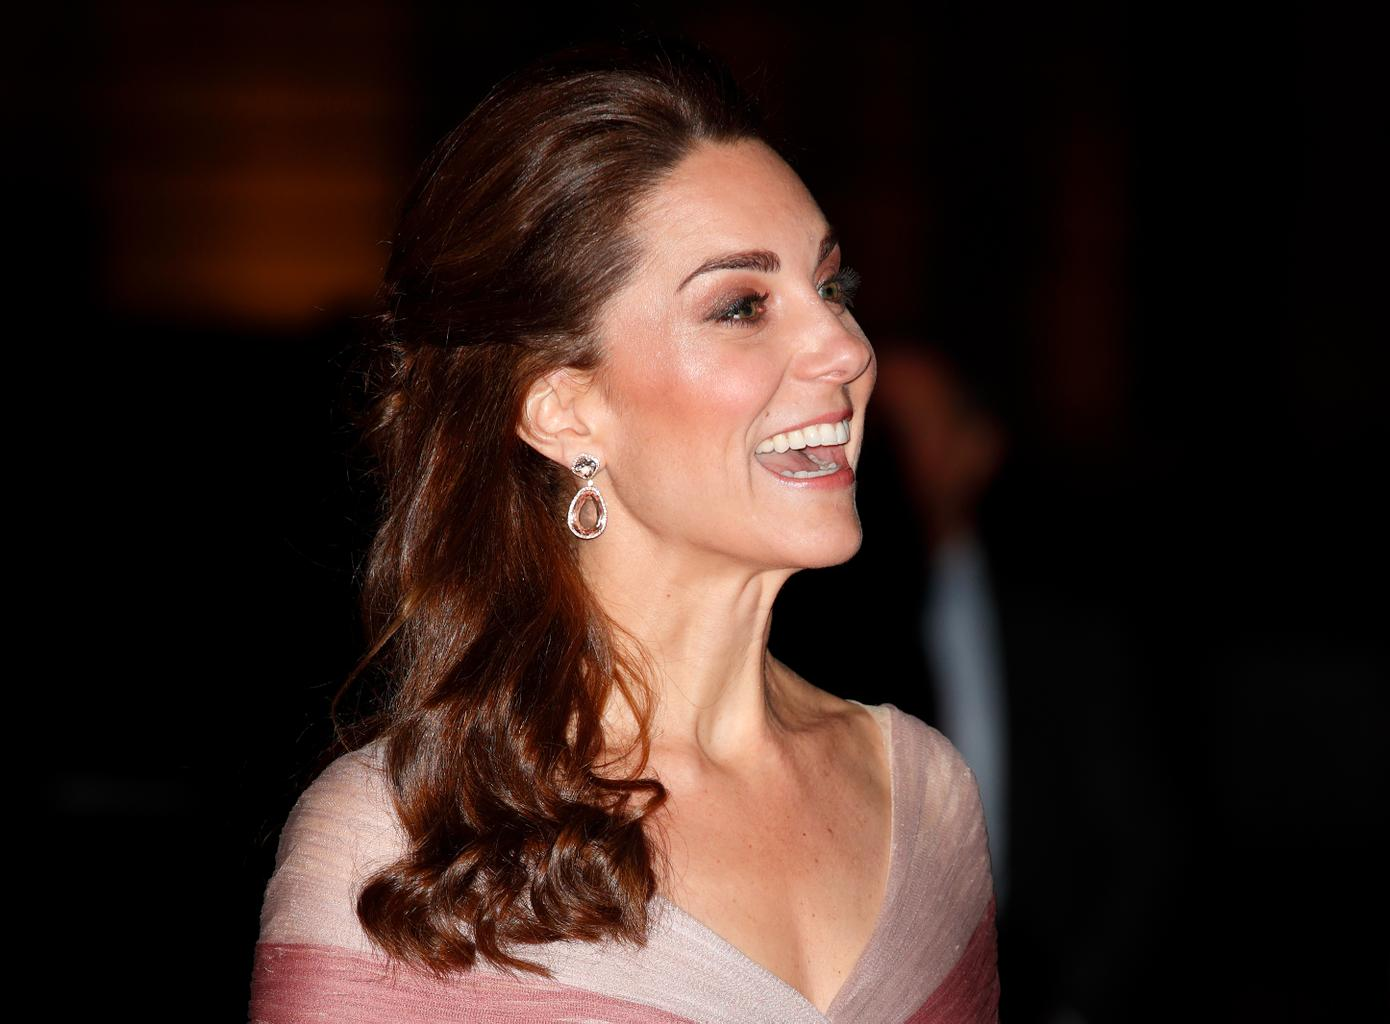 Kate Middleton Stuns In One-Shoulder White Gown At BAFTA Awards